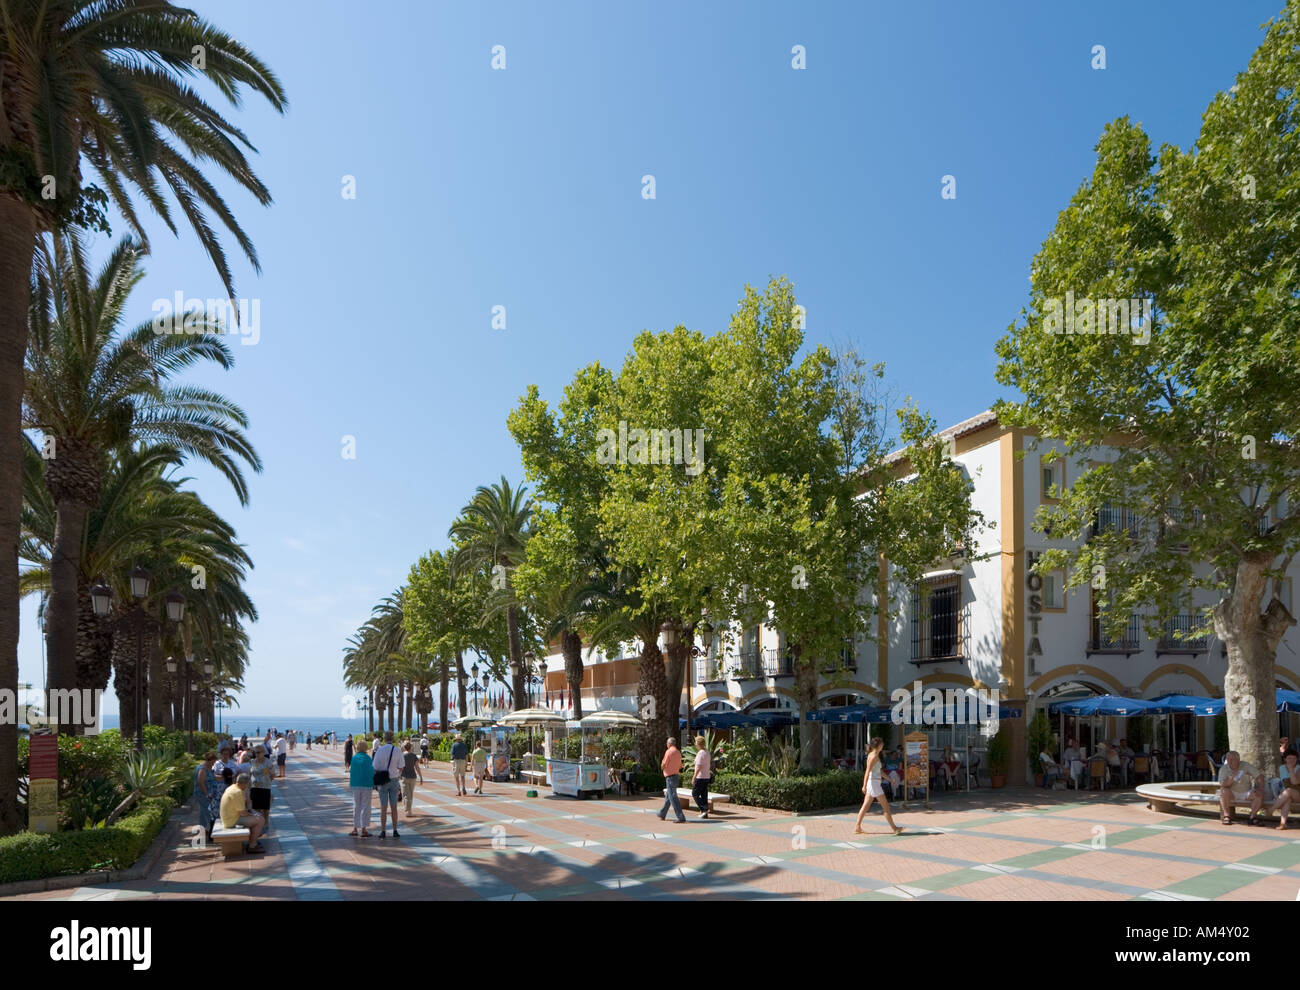 Balcon de Europa, Nerja, Costa del Sol, Andalucia, Spain Stock Photo